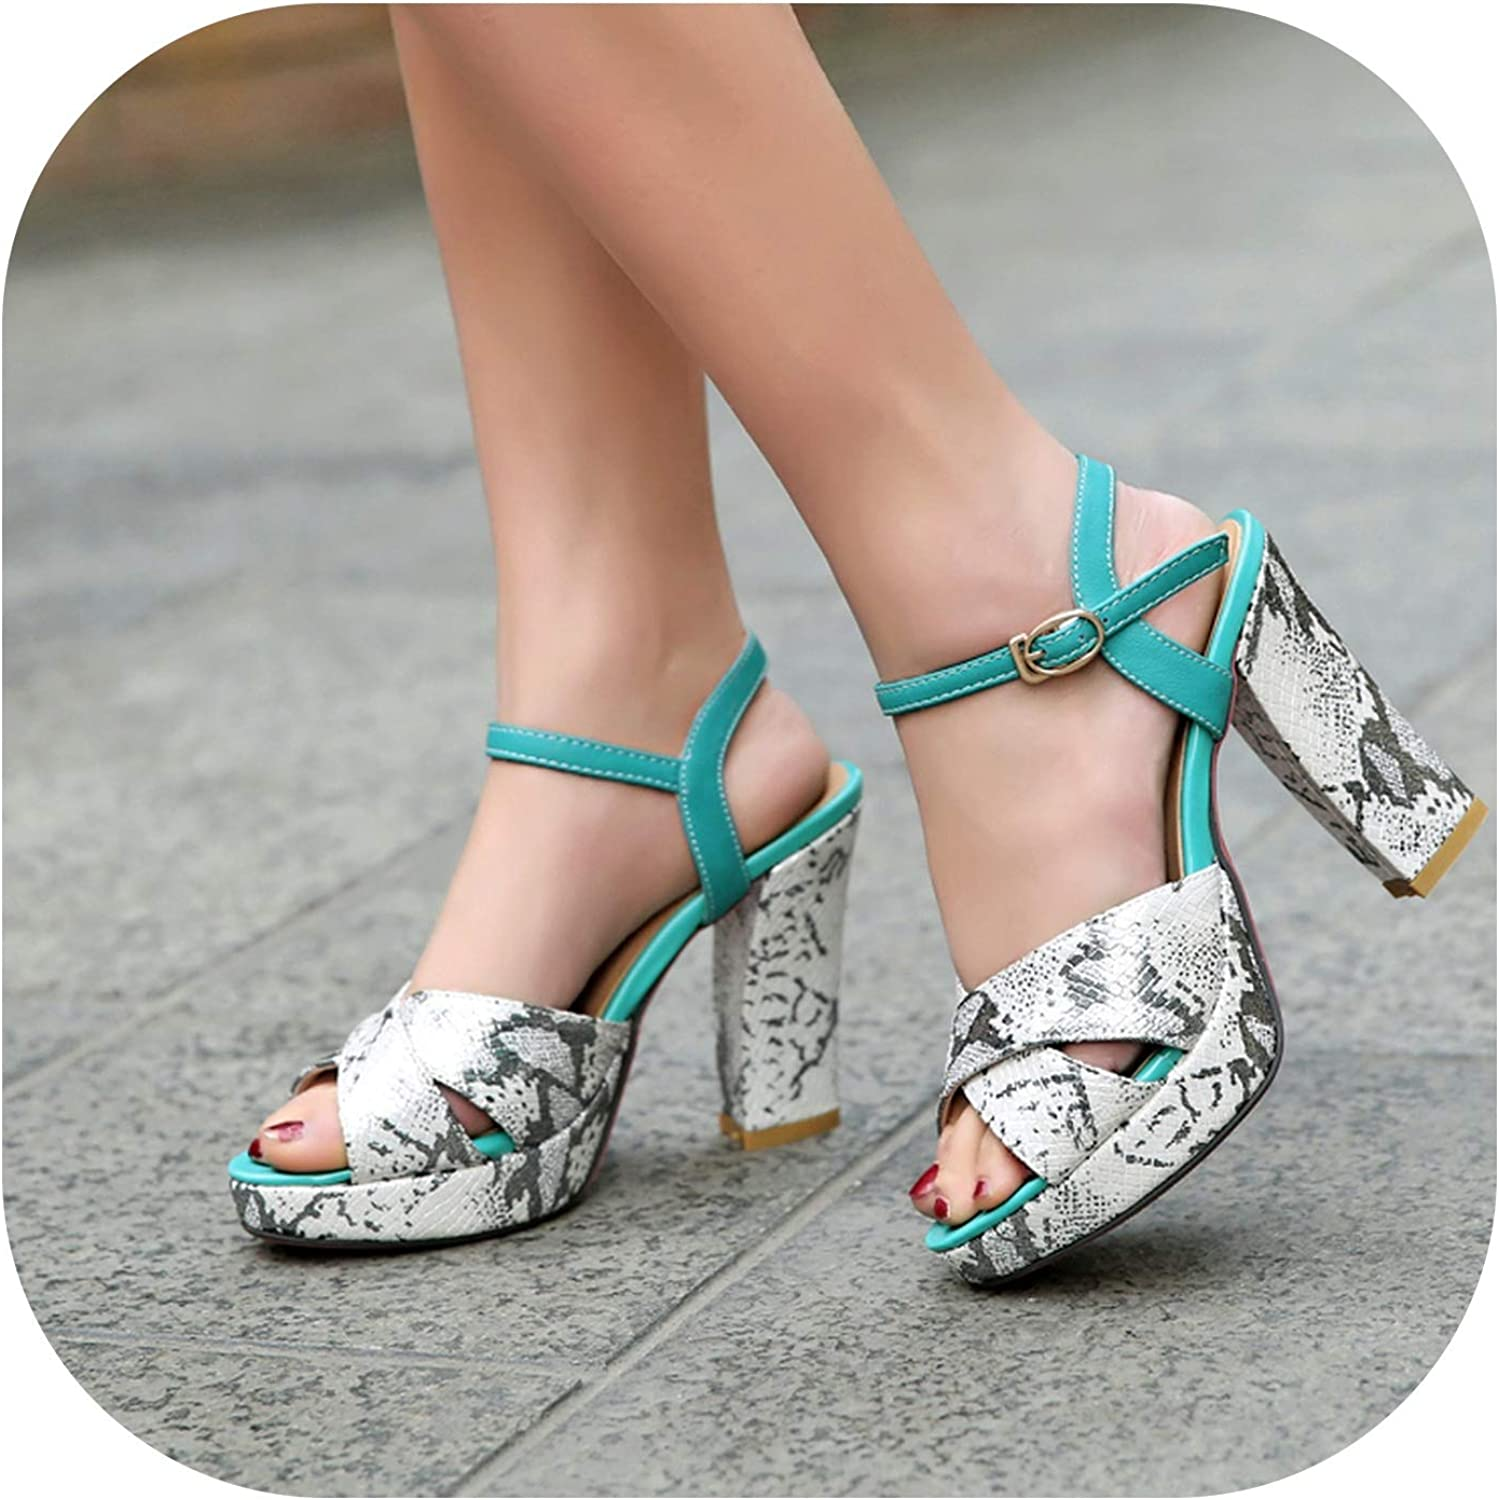 Shigh Heeled Sandals with Thick and The Wind Buckle Waterproof shoes